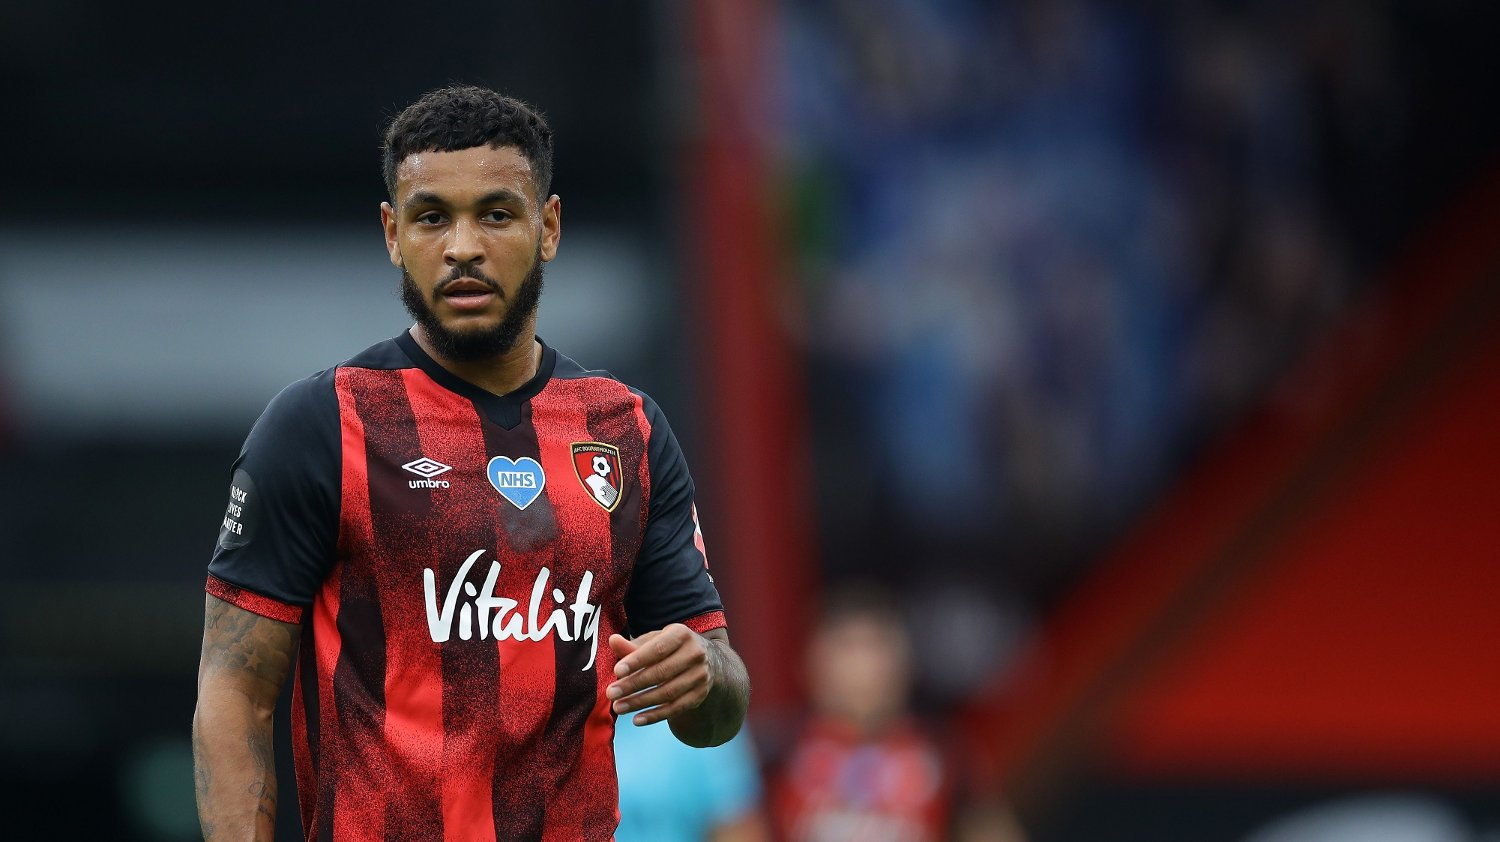 Bournemouth's Joshua King during the Premier League match at the Vitality Stadium, Bournemouth. Picture date: 9th July 2020. Picture credit should read: David Klein/Sportimage via PA Images